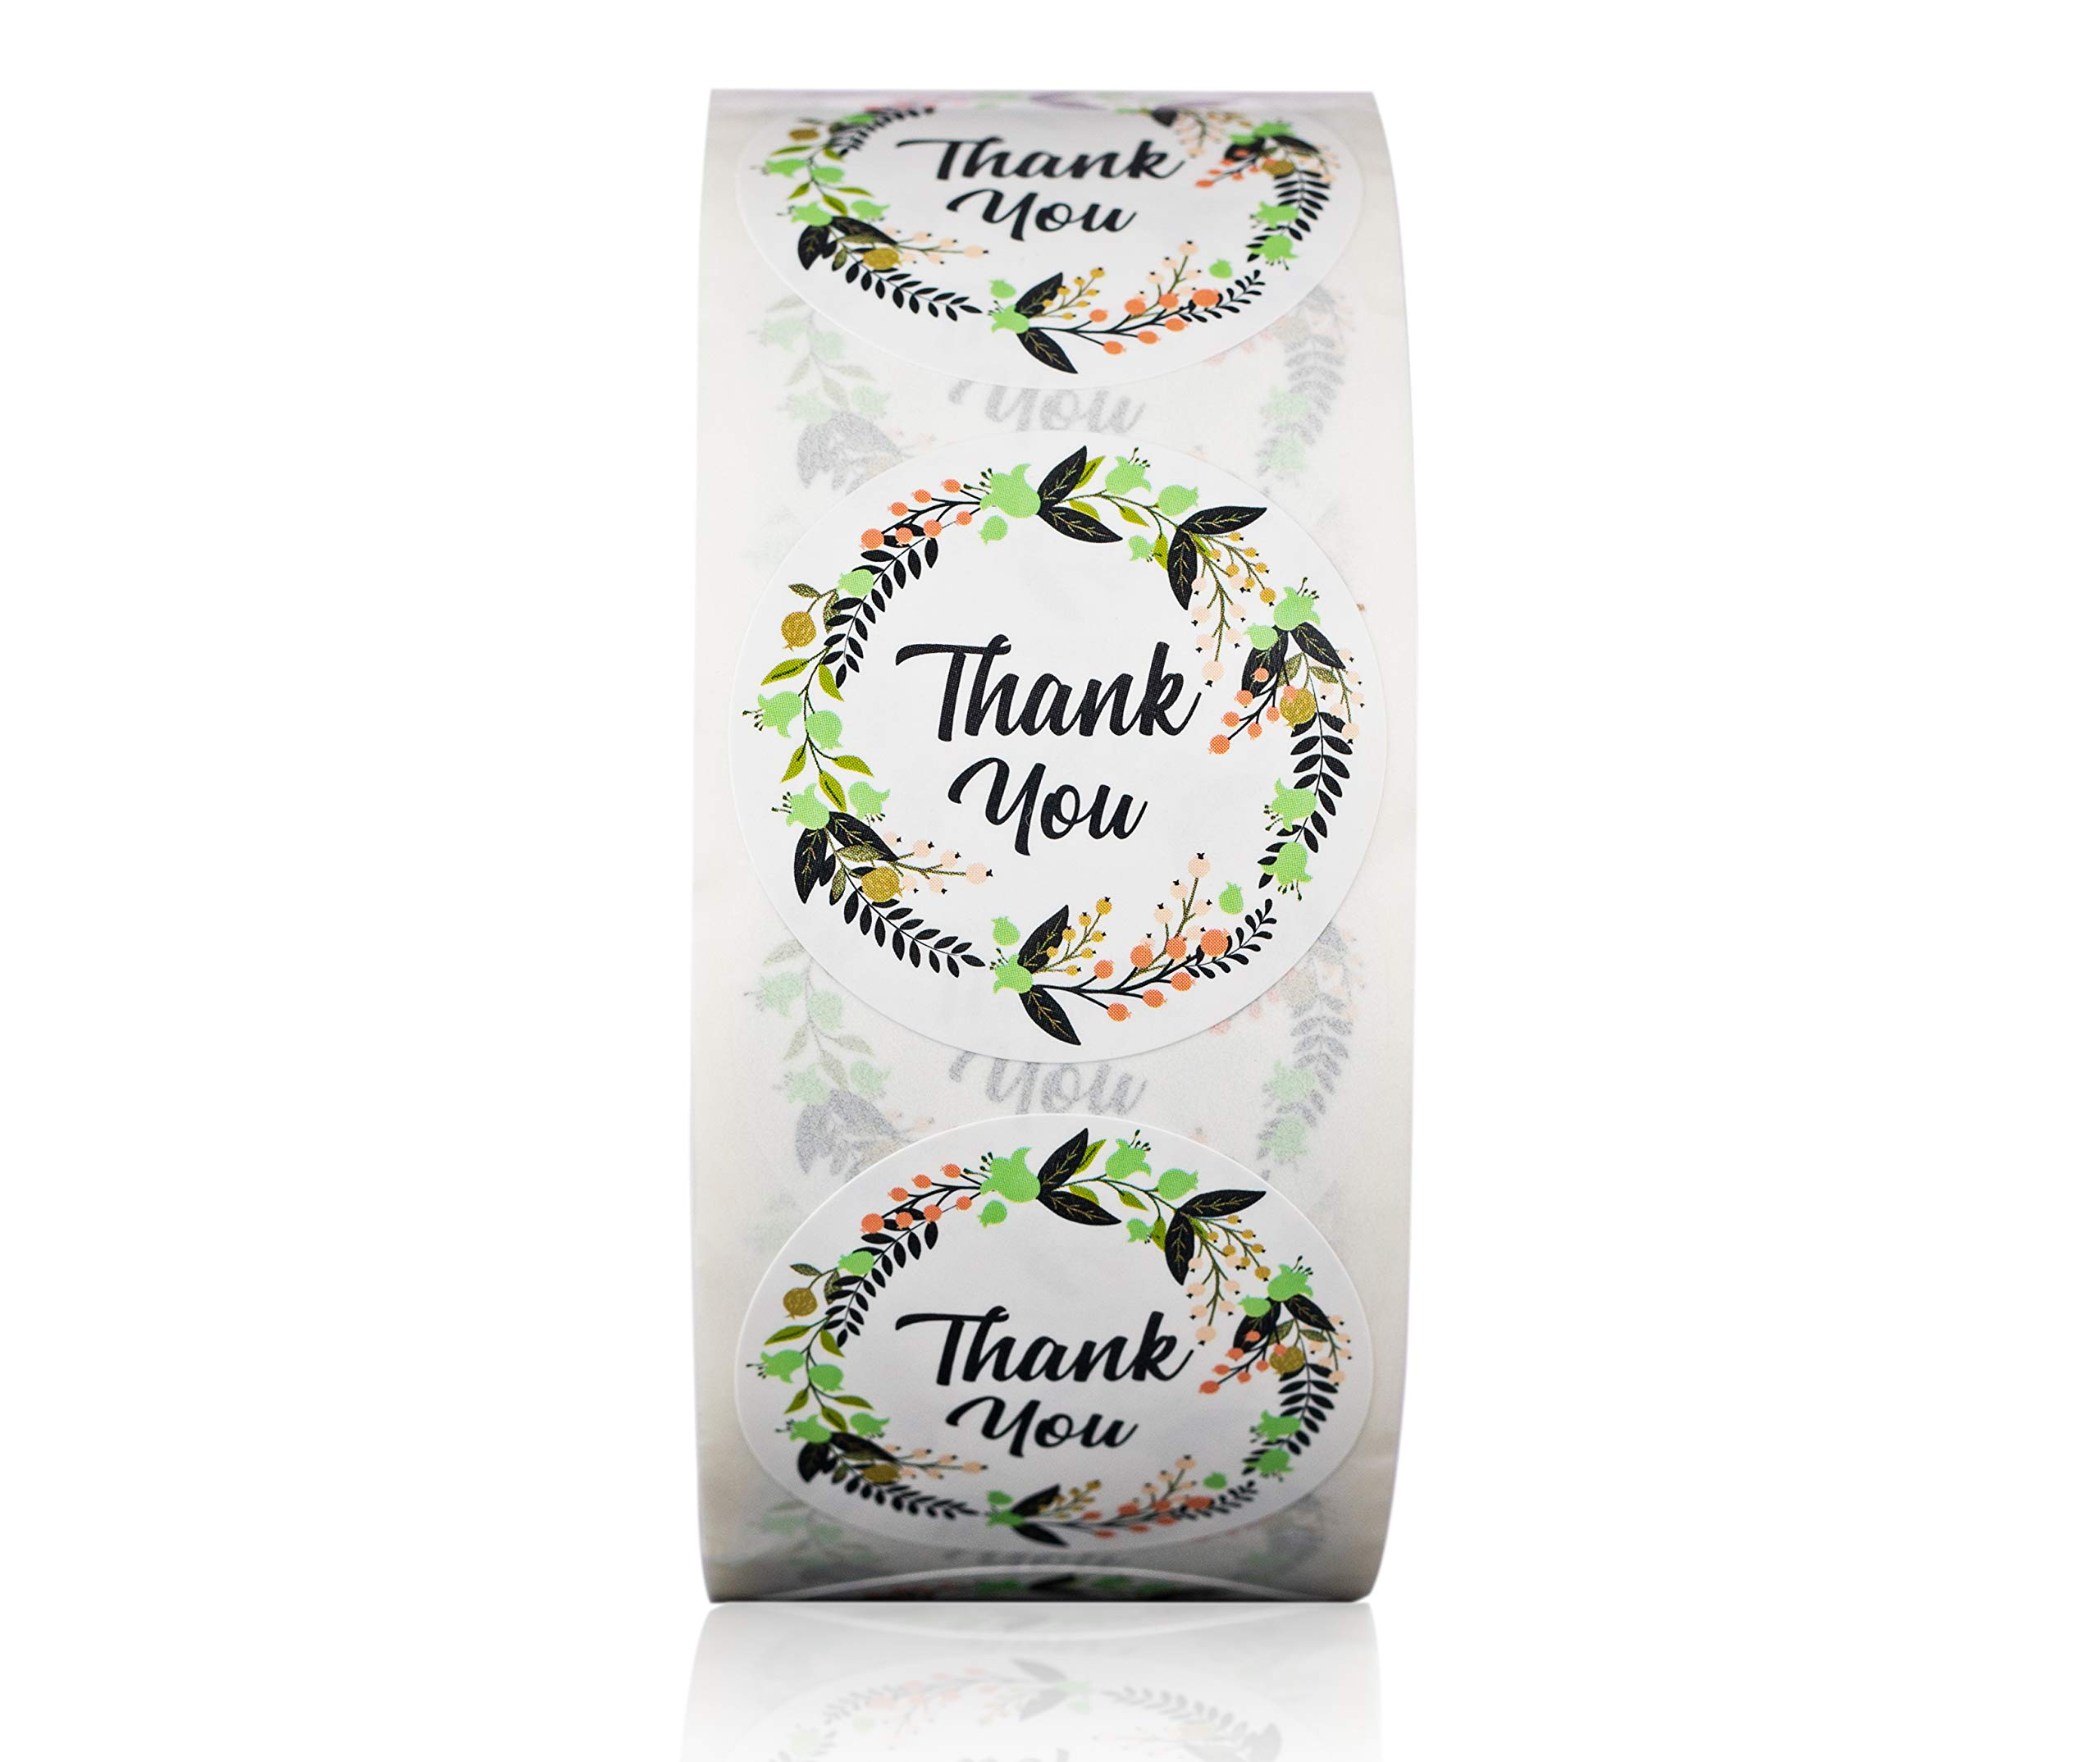 Ivy Paper Co Modern Floral Thank You Stickers | Roll of 1000 | 1.5'' Flower Envelope Sealers | Beautiful Circle Labels for Business, Gifts, Bridal, Thank You Cards Notes | Boho Gift Tags |Cute Stickers by Ivy Paper Co (Image #1)